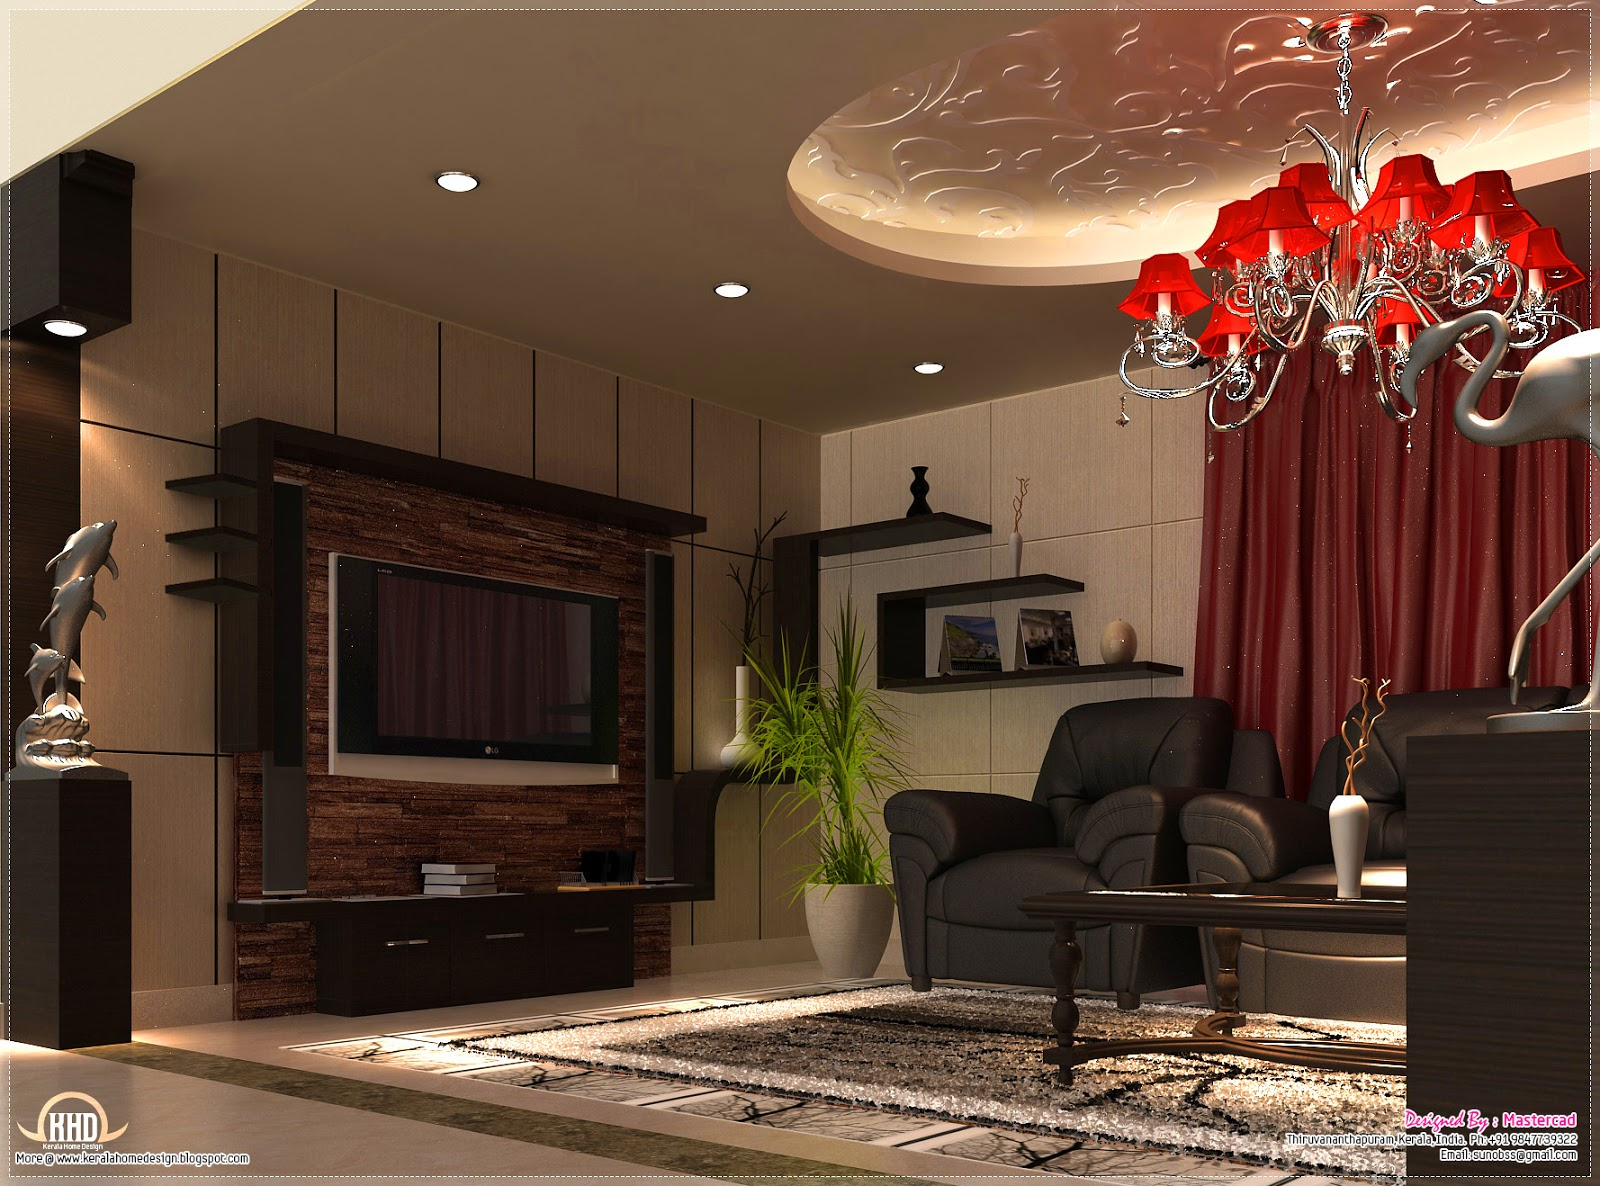 Interior design ideas kerala home design and floor plans for Latest interior designs for home